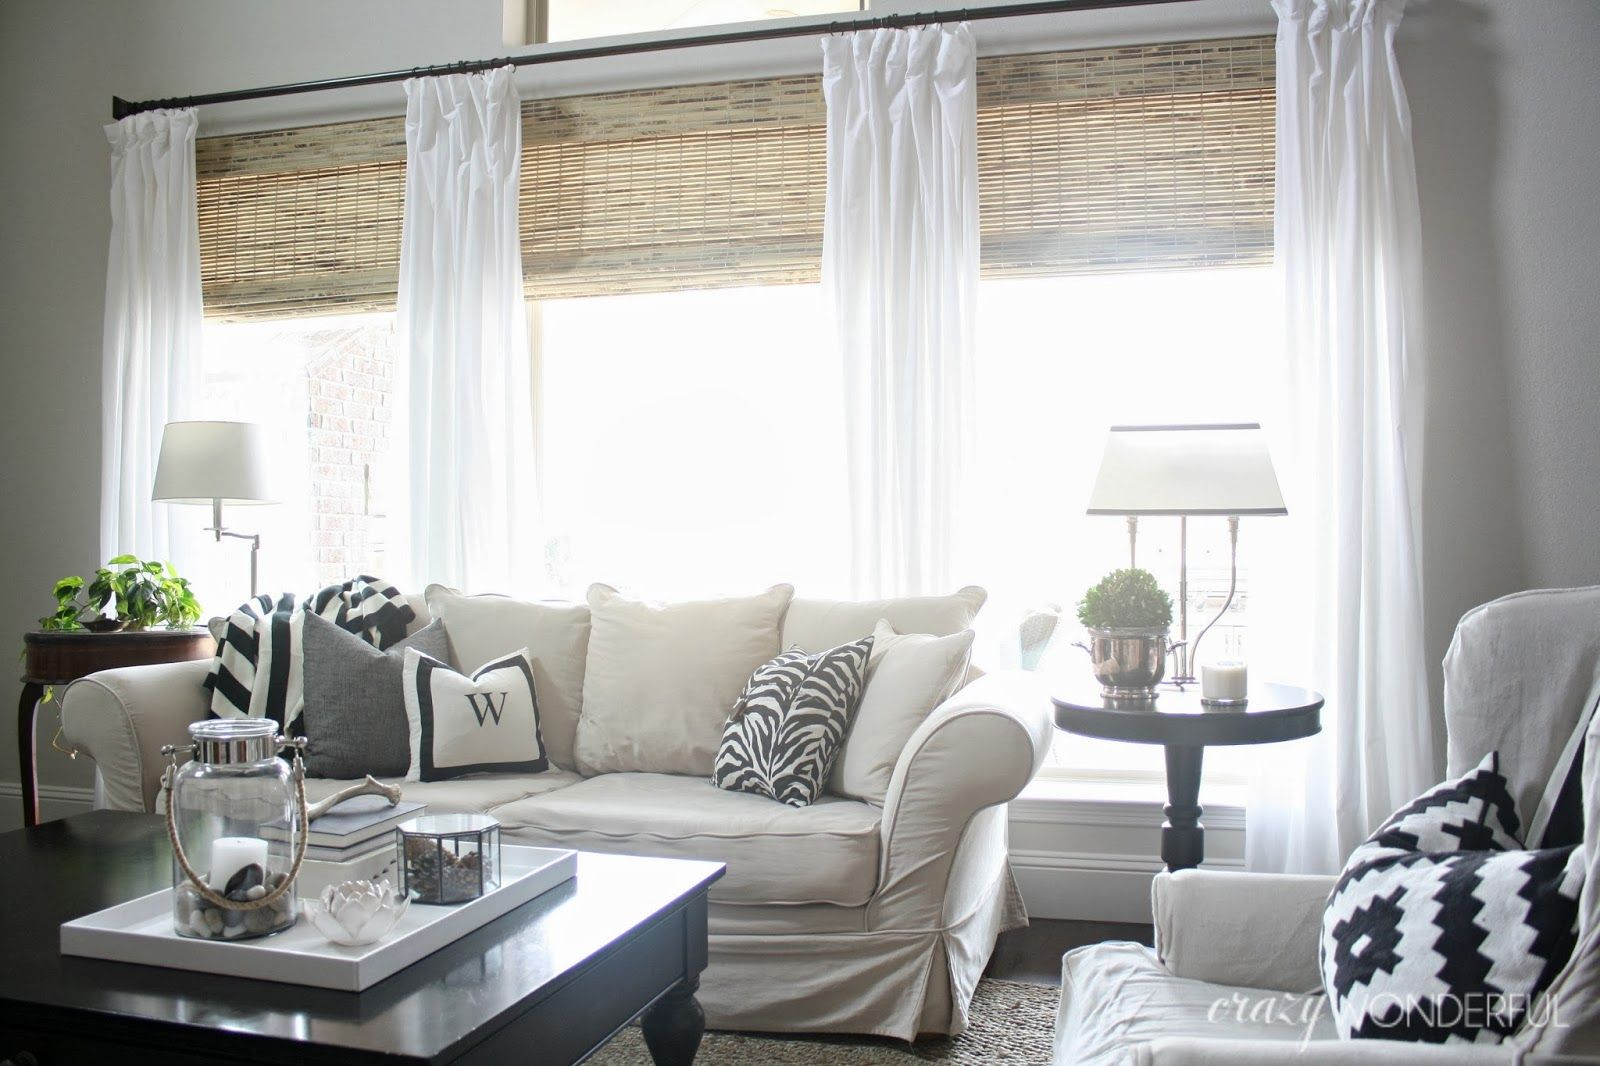 Crazy wonderful bamboo roman shades